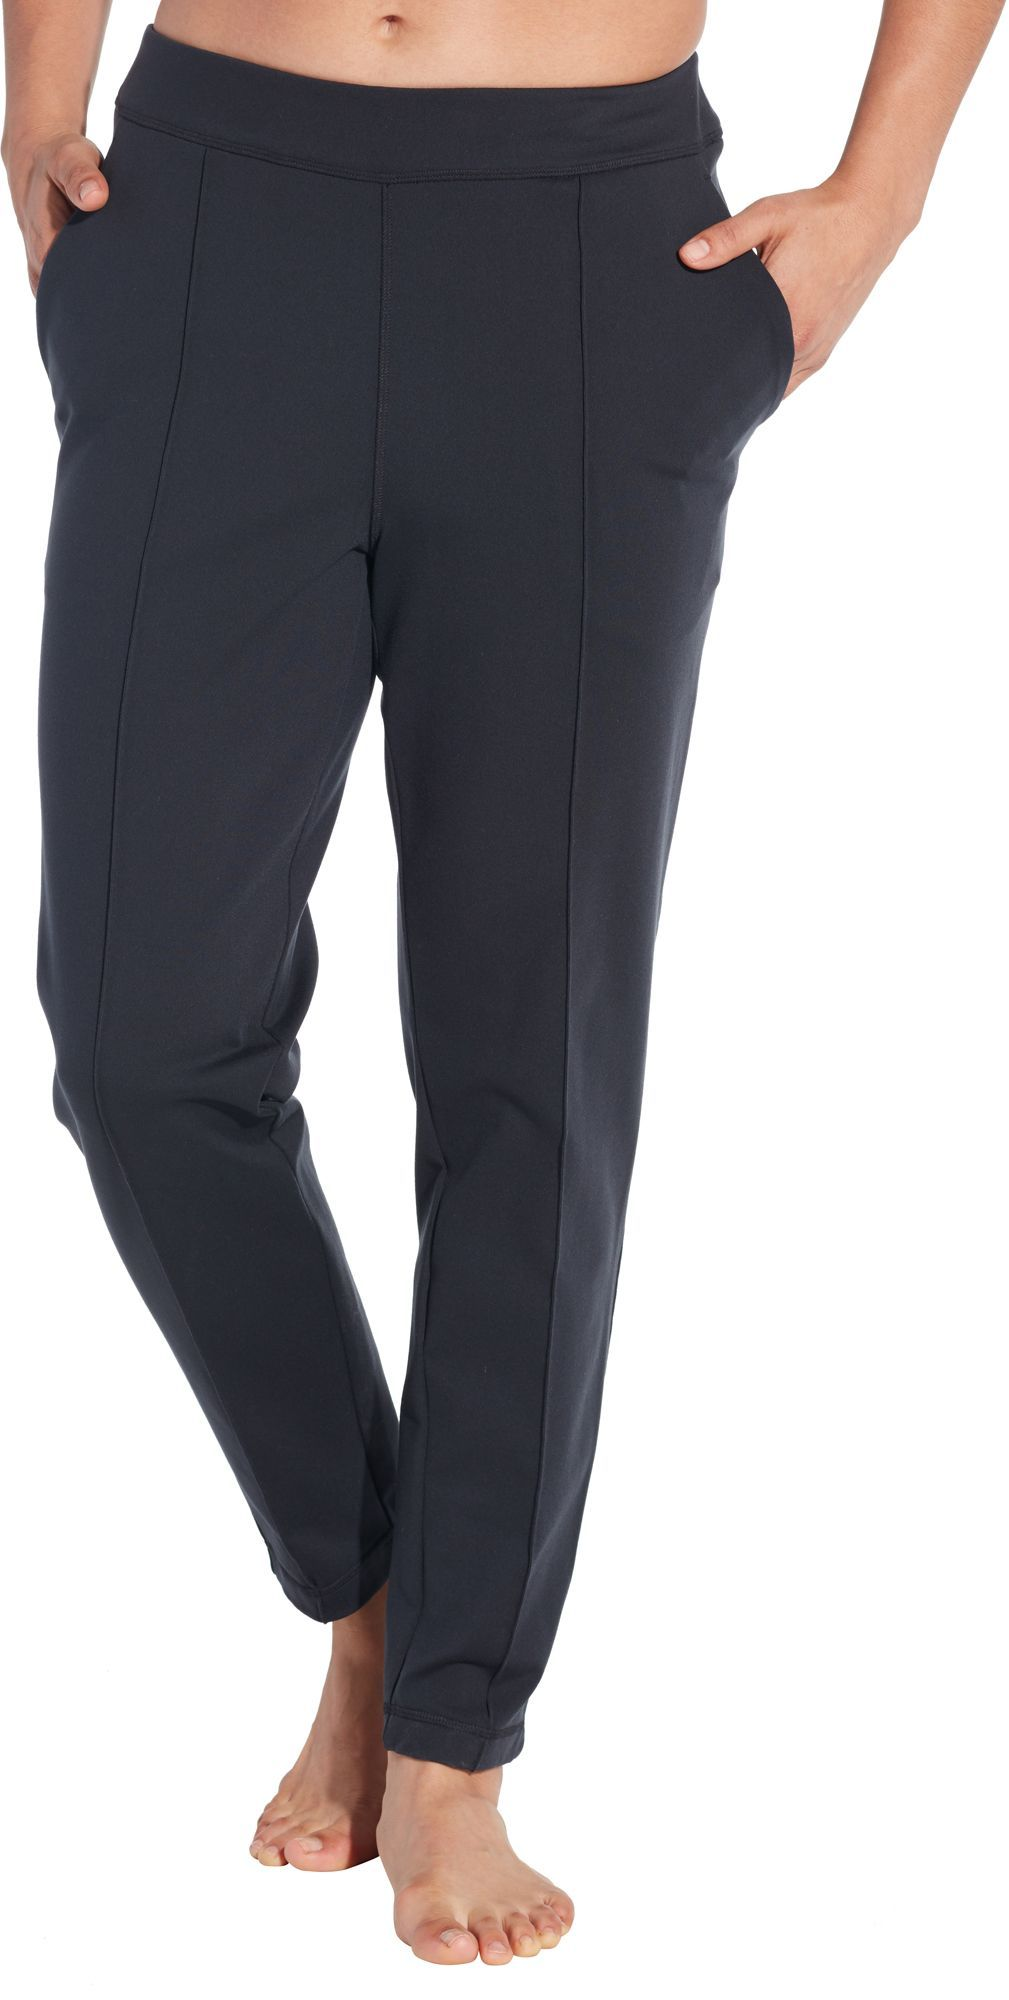 335cd092deded Calia by Carrie Underwood Women's Work To Workout Pants, Size: XL, Black